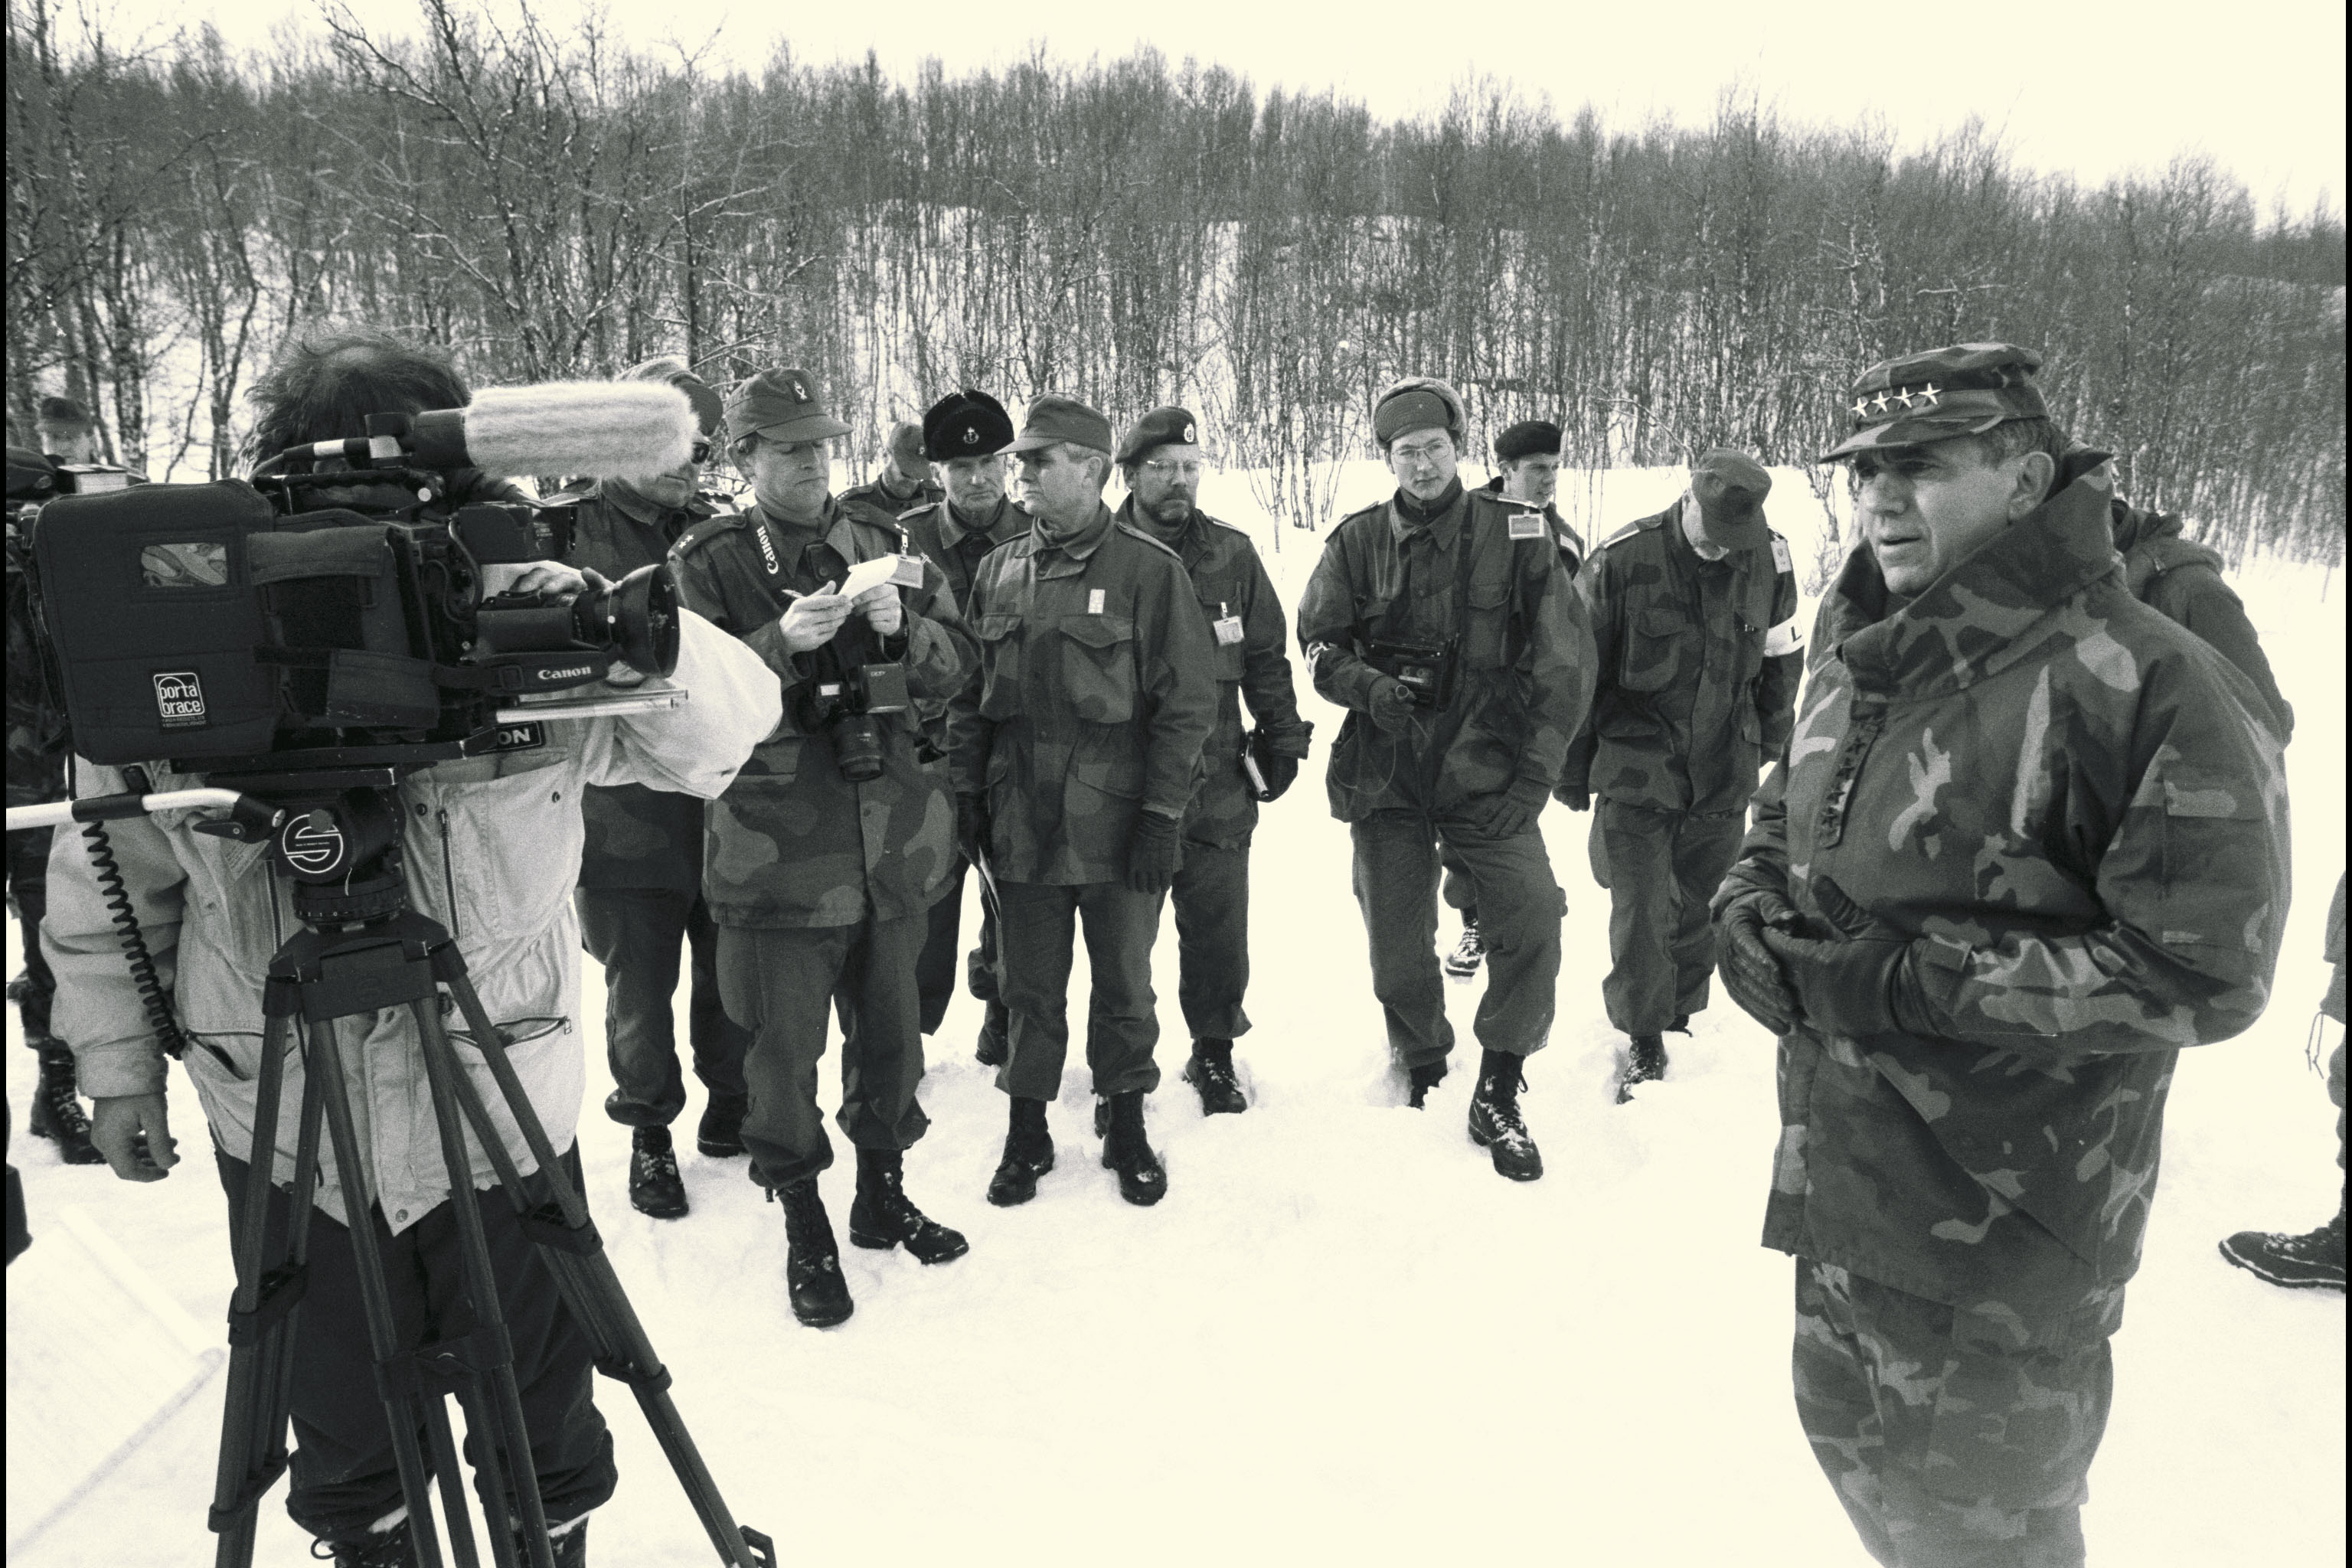 NATO Media Library: ARCTIC EXPRESS Exercise - 14 March 1994